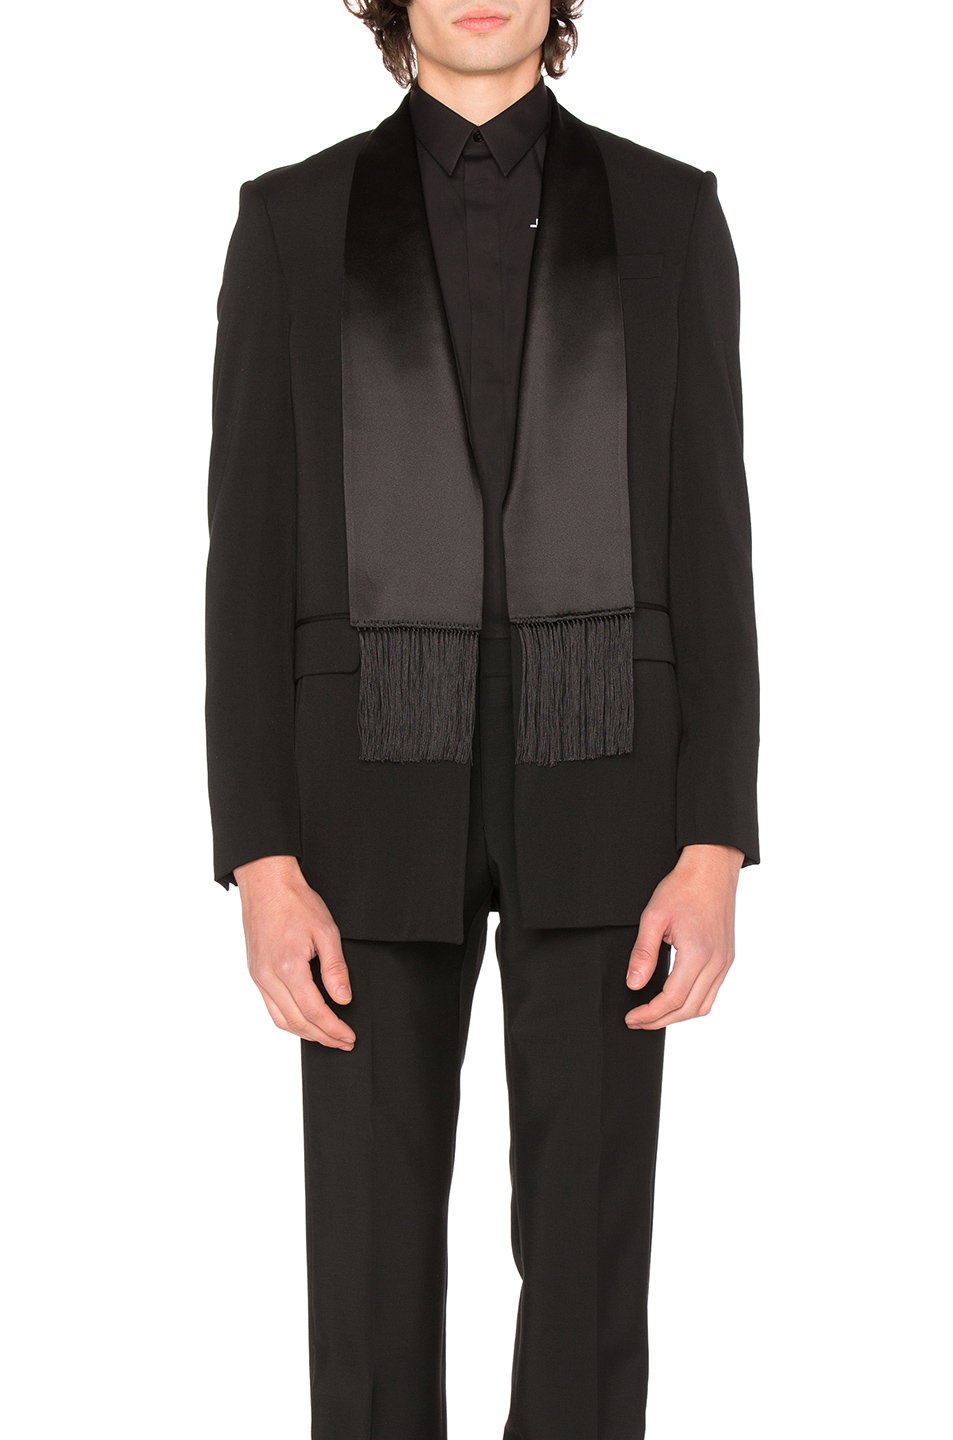 Photo of Givenchy Single Breast Scarf Collar Jacket in Black - shop Givenchy menswear